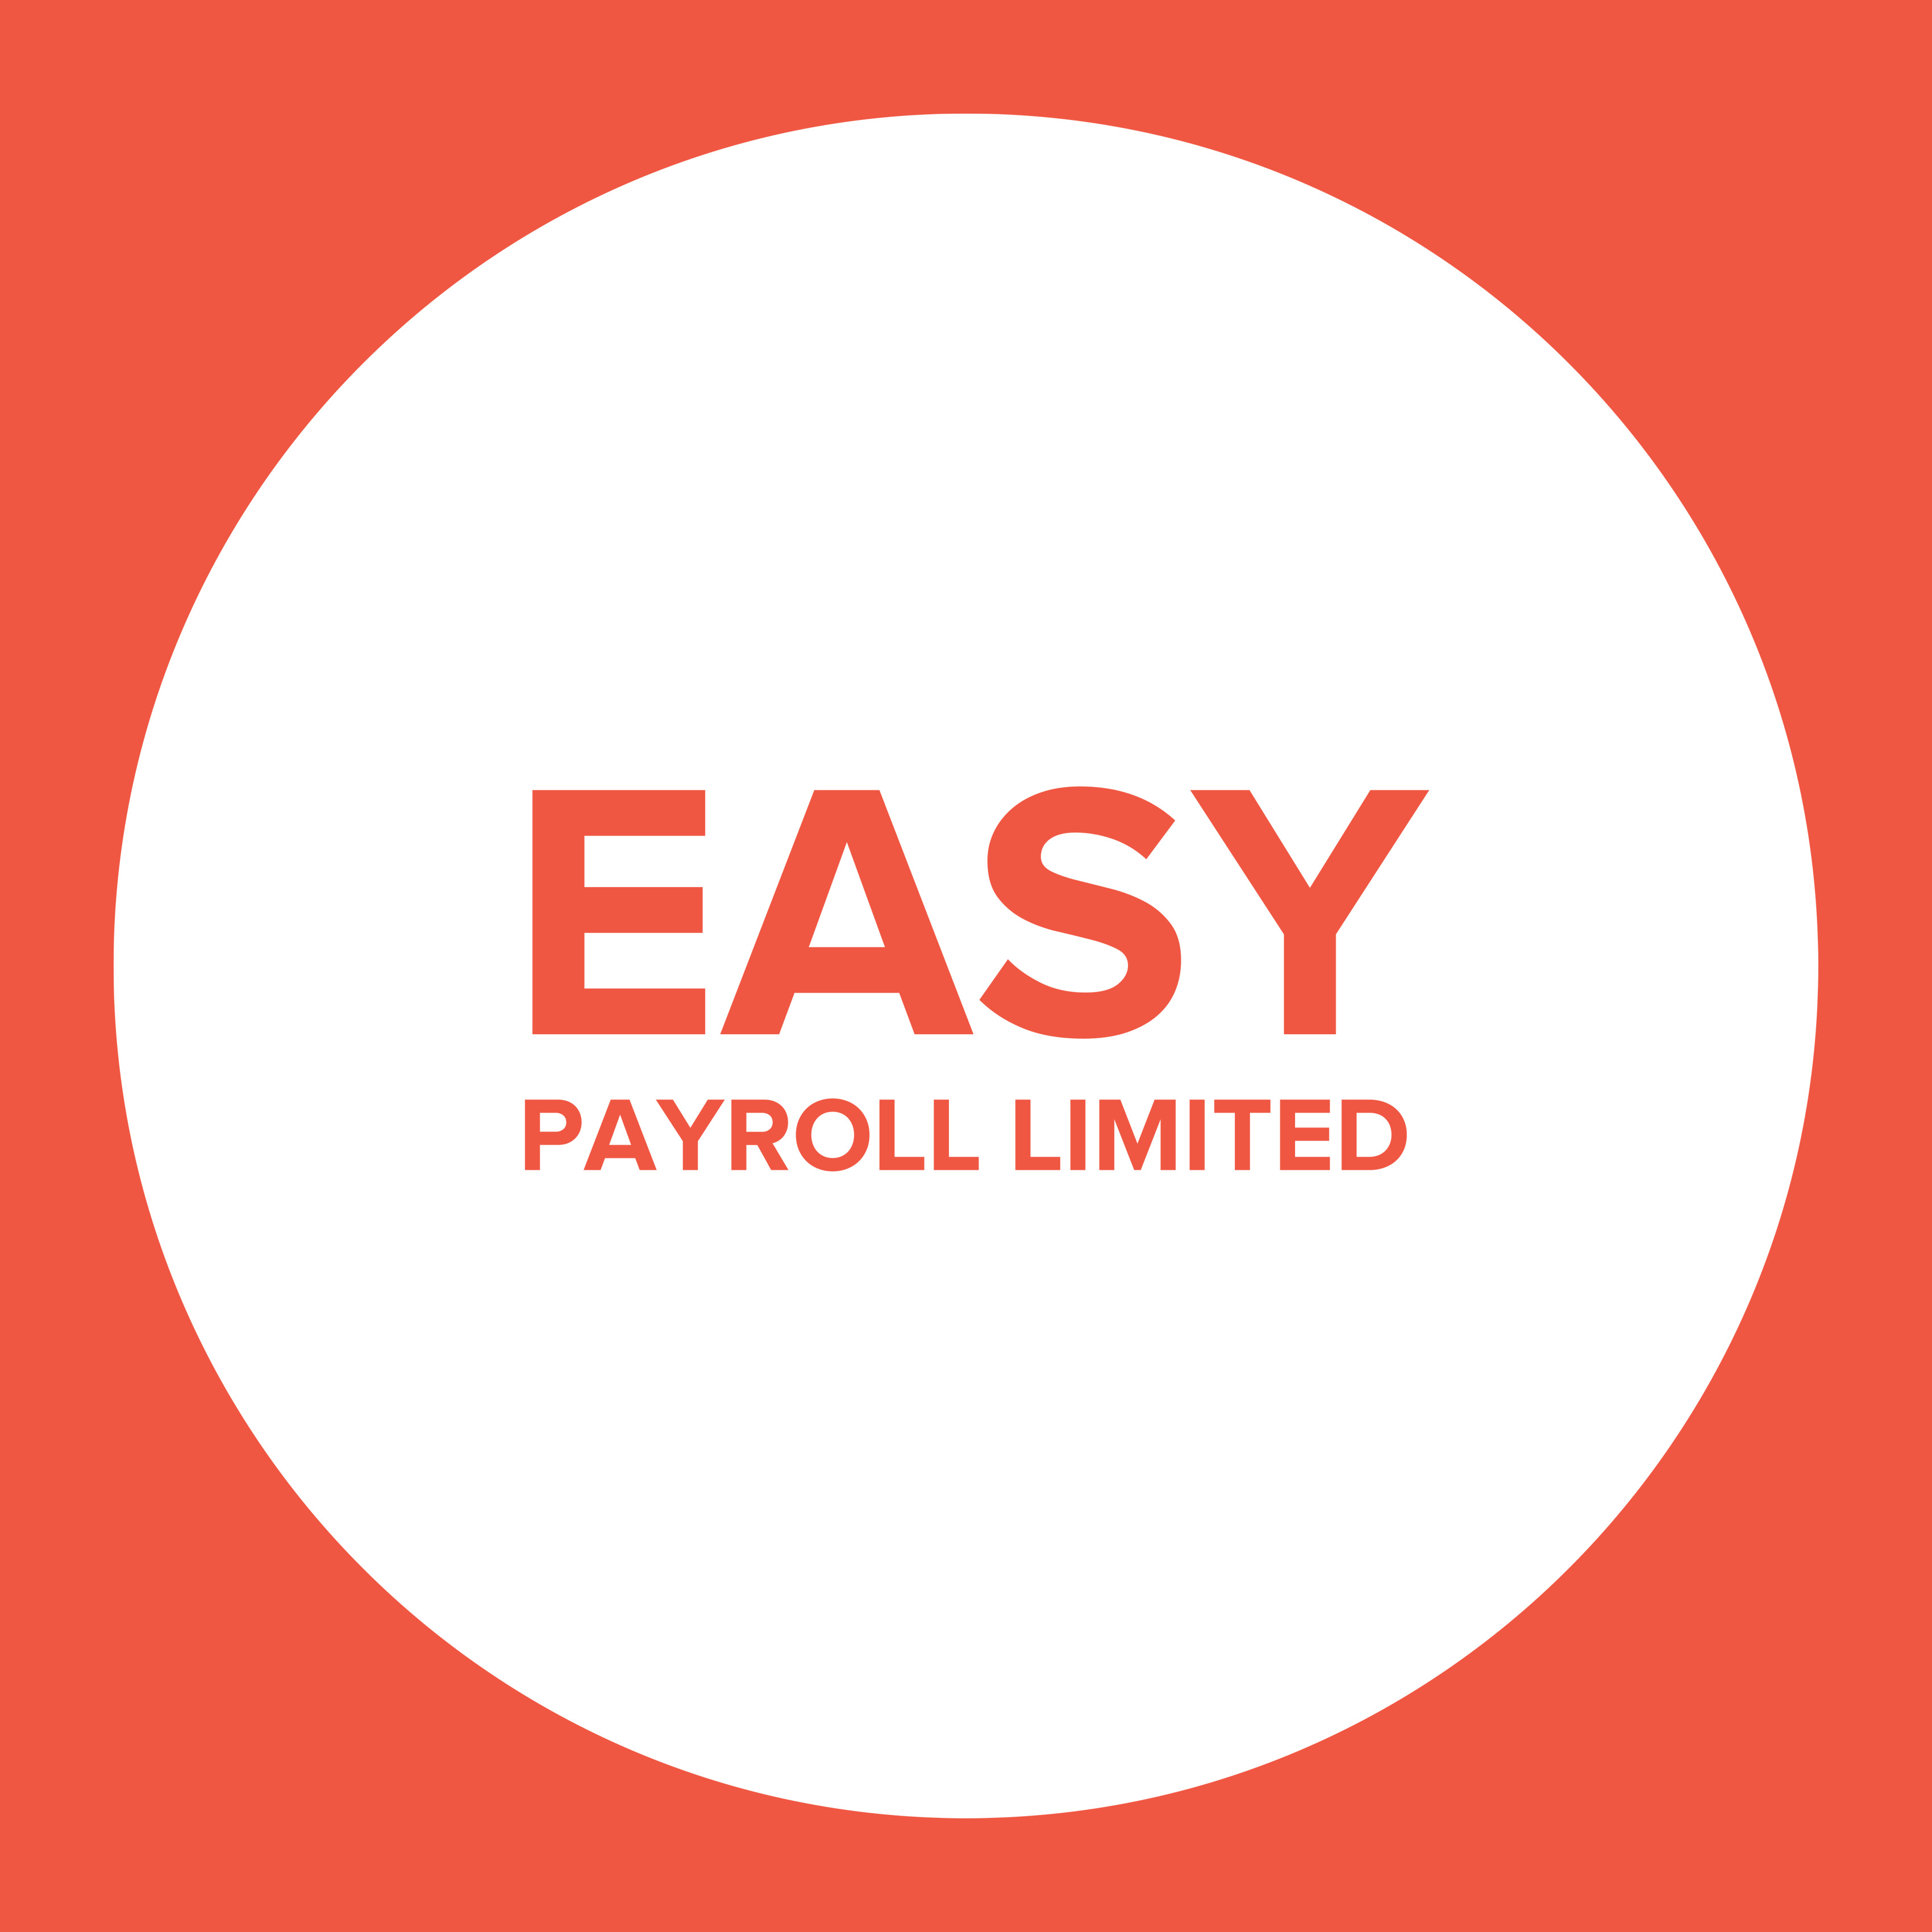 Easy Payroll Limited